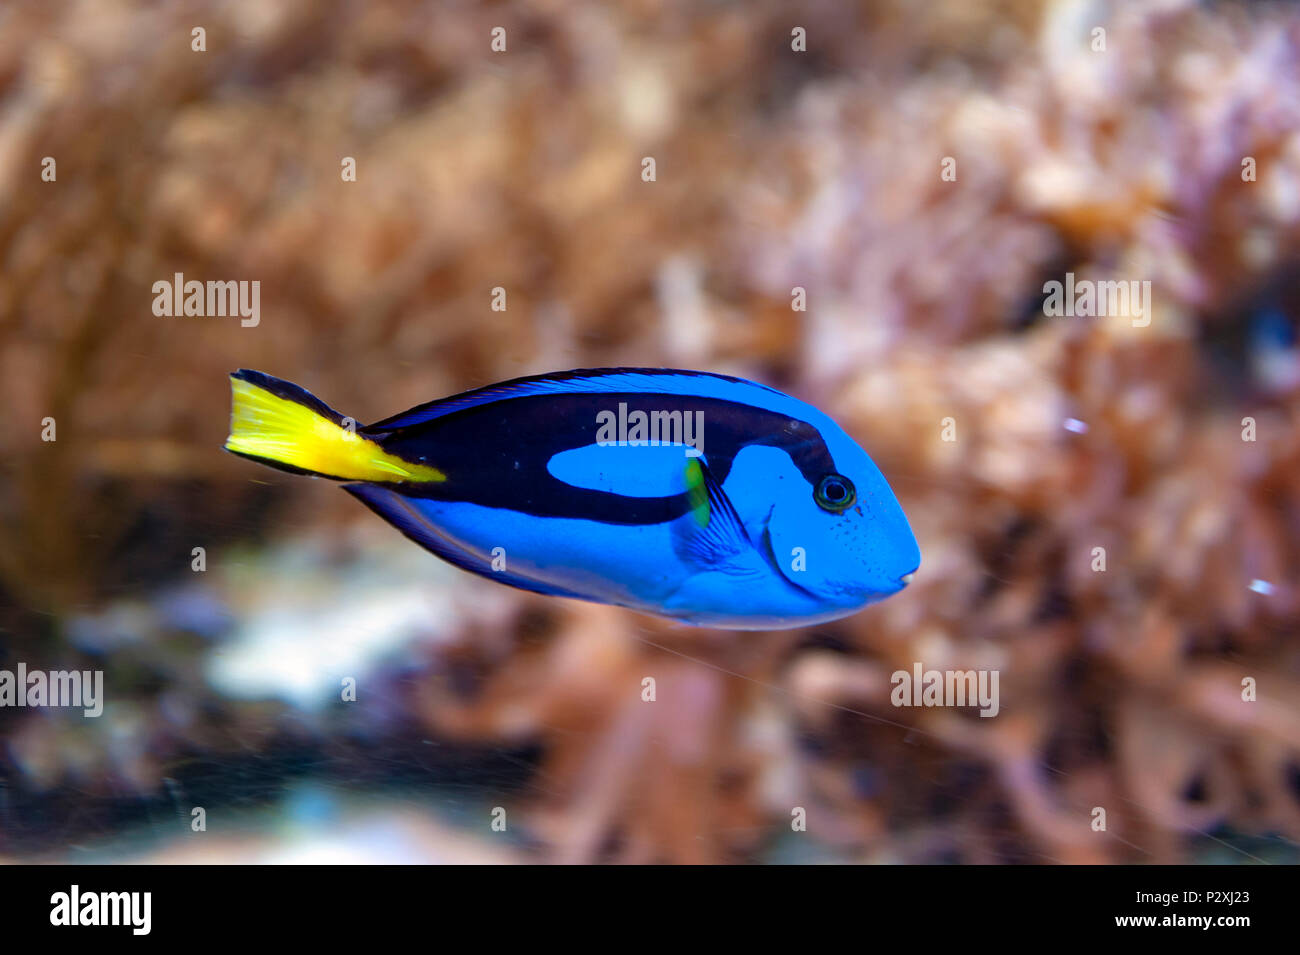 Regal blue tang, palette surgeonfish, or hippo tang, an Indo-Pacific surgeonfish of Paracanthurus hepatus species with bright blue color - Stock Image